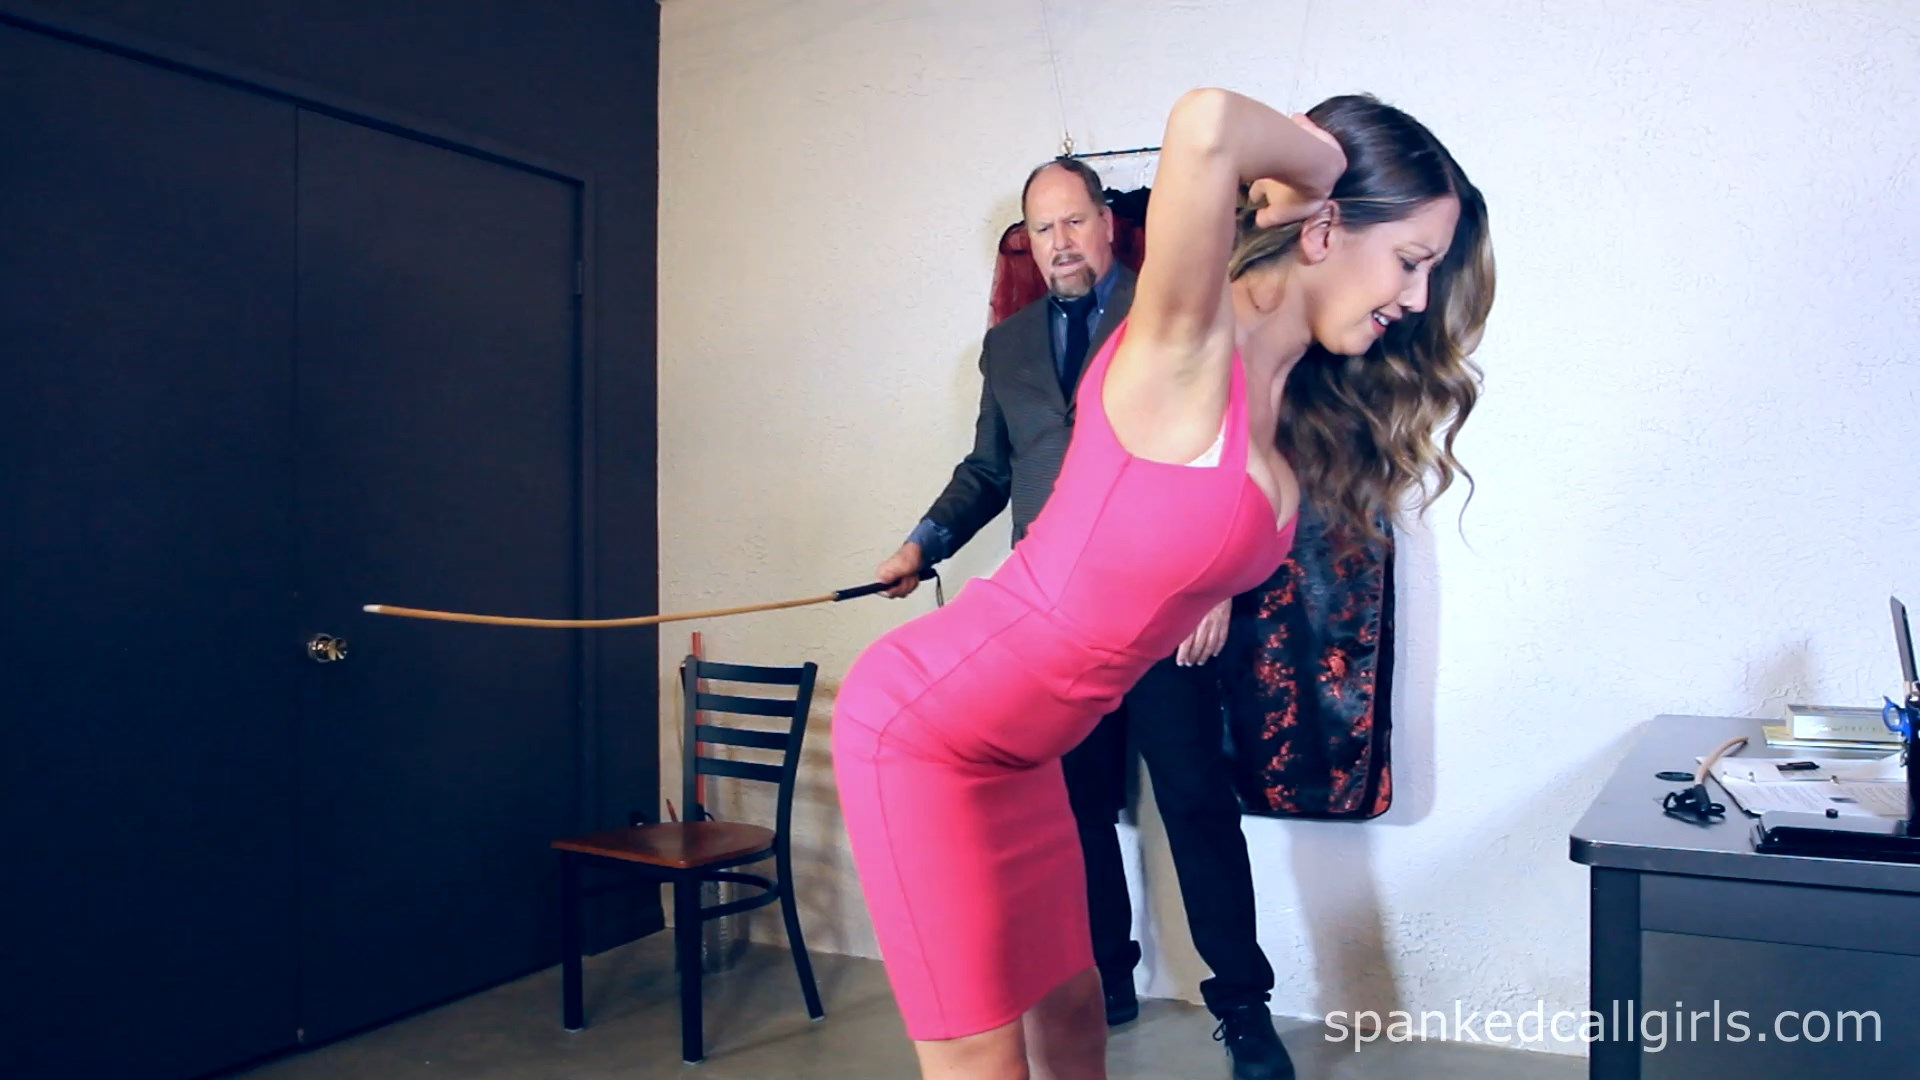 Spanked Call Girls – MP4/Full HD – Chrissy Maried Punished By Boss Day 1